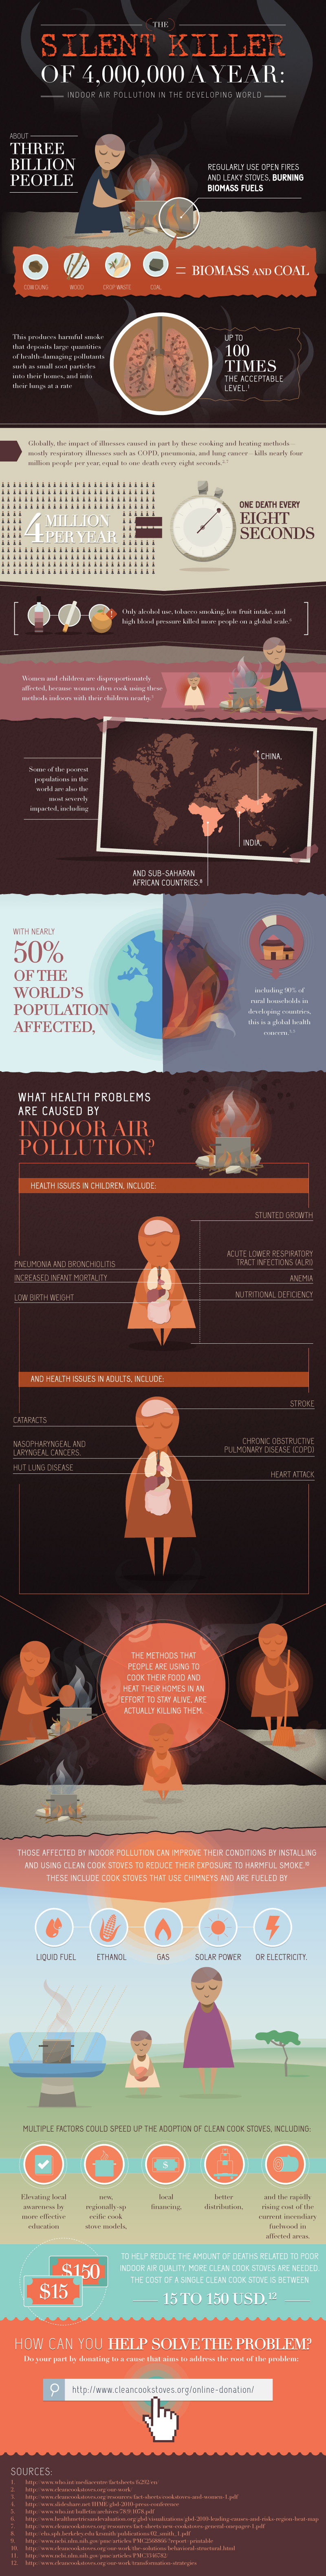 Indoor Air Pollution Facts-Infographic